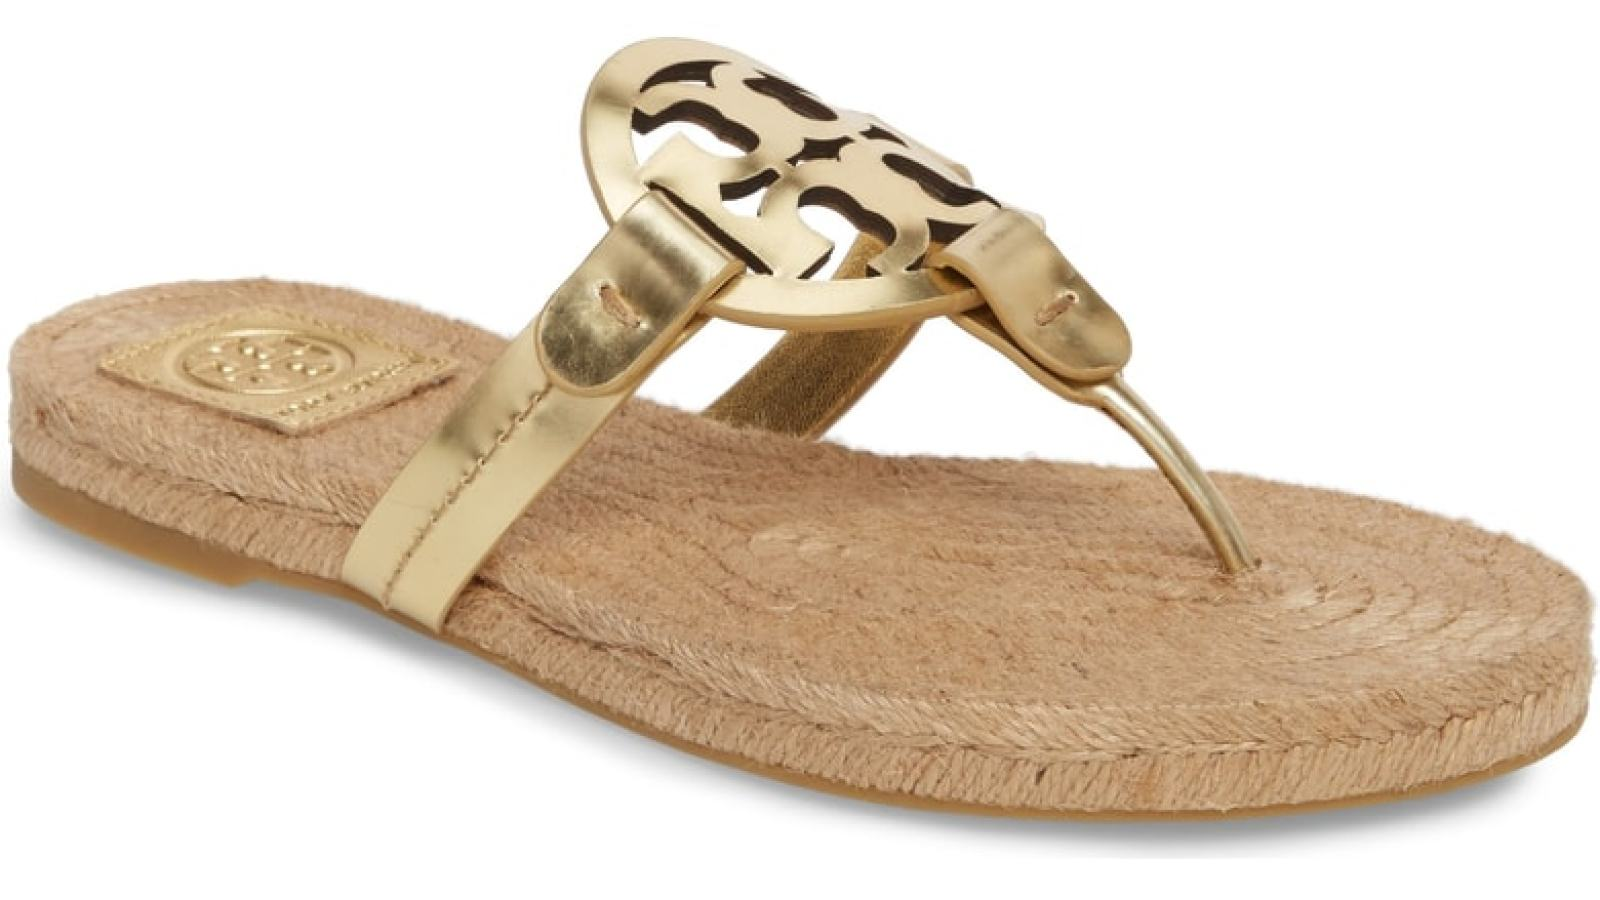 fa36f1e03f49d8 So Many Tory Burch Sandals Are On Sale at Nordstrom and We re Already  Stocking Up for Next Summer